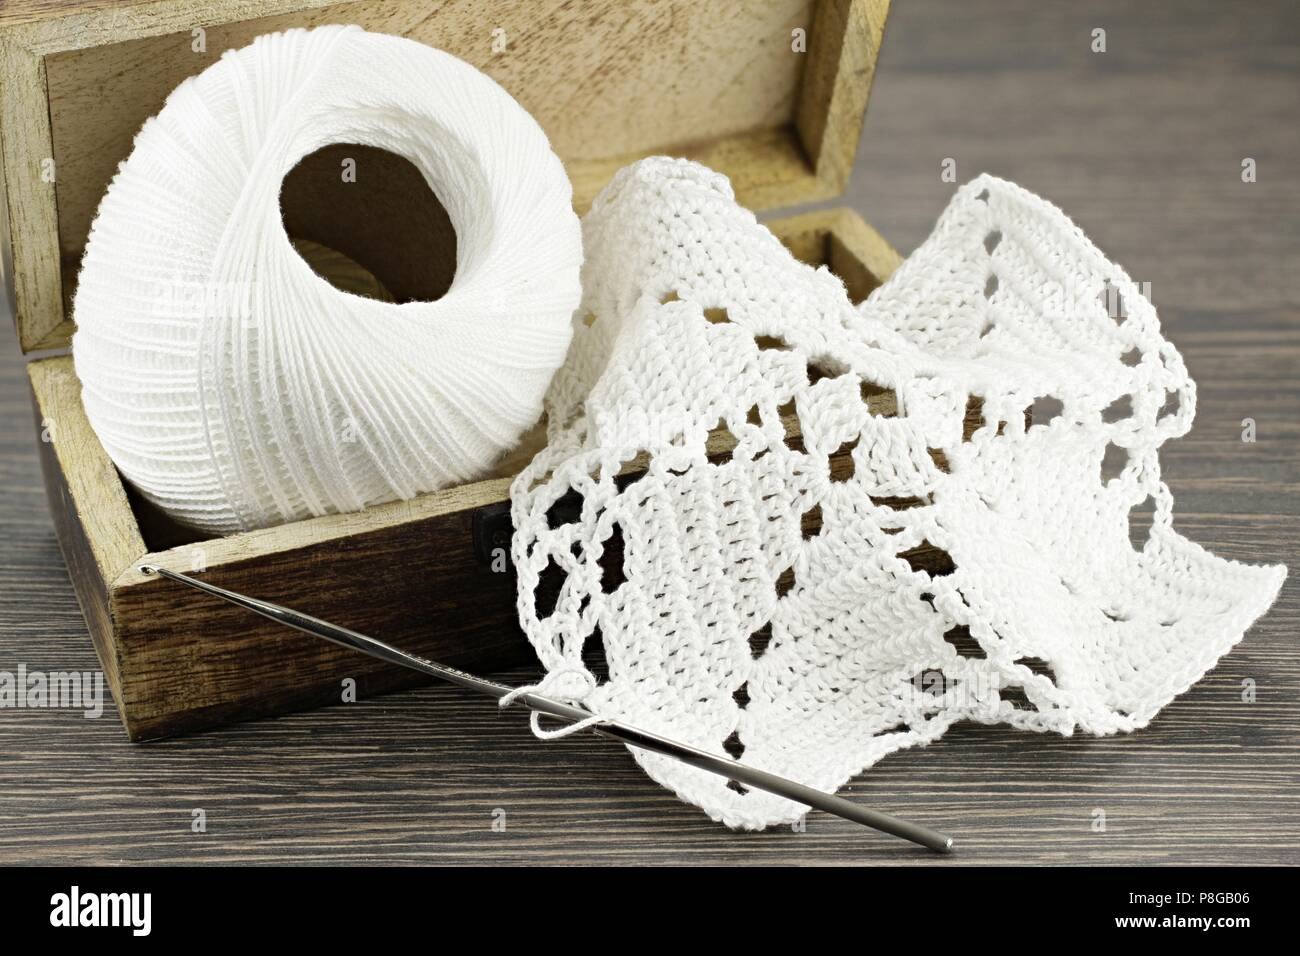 Crochet Art Stock Photos & Crochet Art Stock Images - Alamy